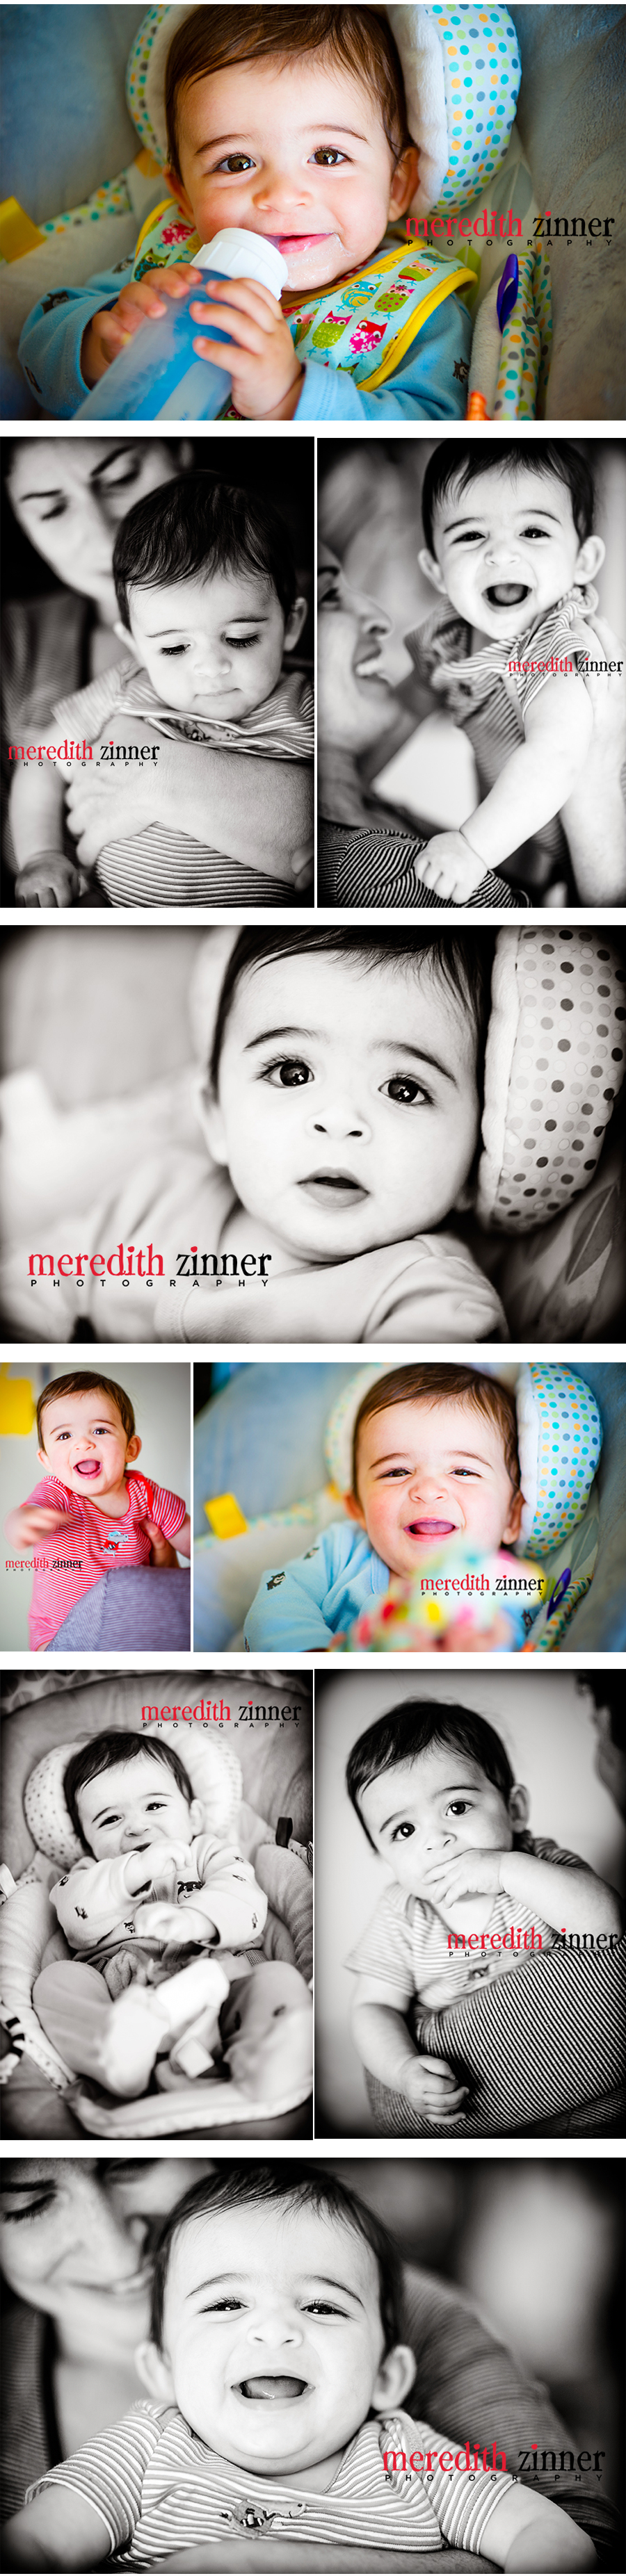 meredith zinner childrens photography nyc